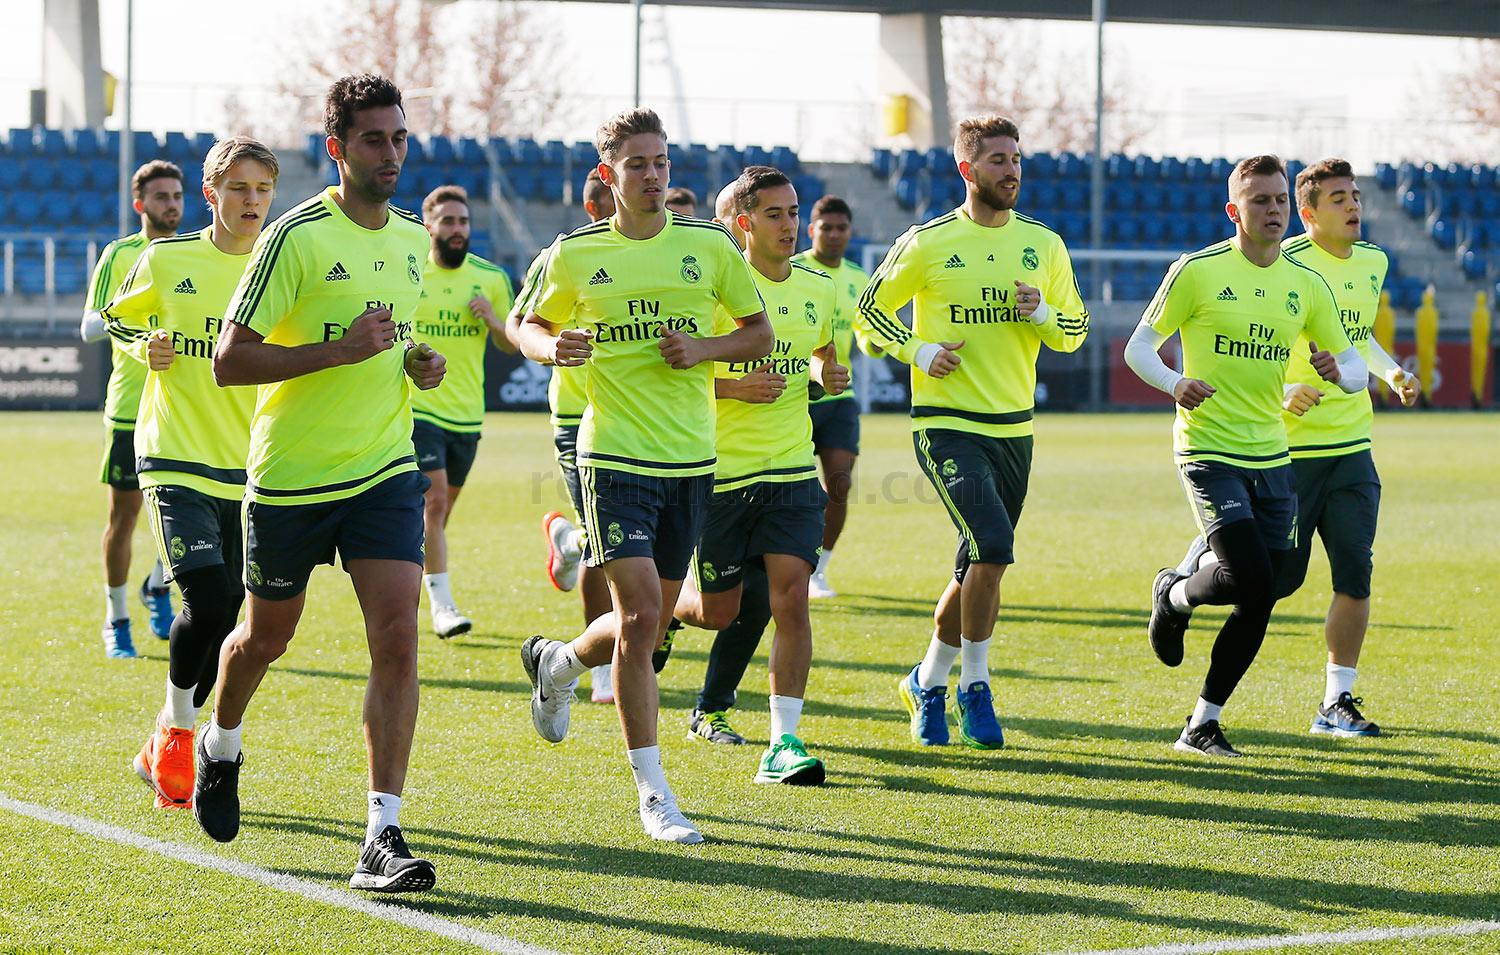 Real Madrid - Entrenamiento del Real Madrid - 26-01-2016